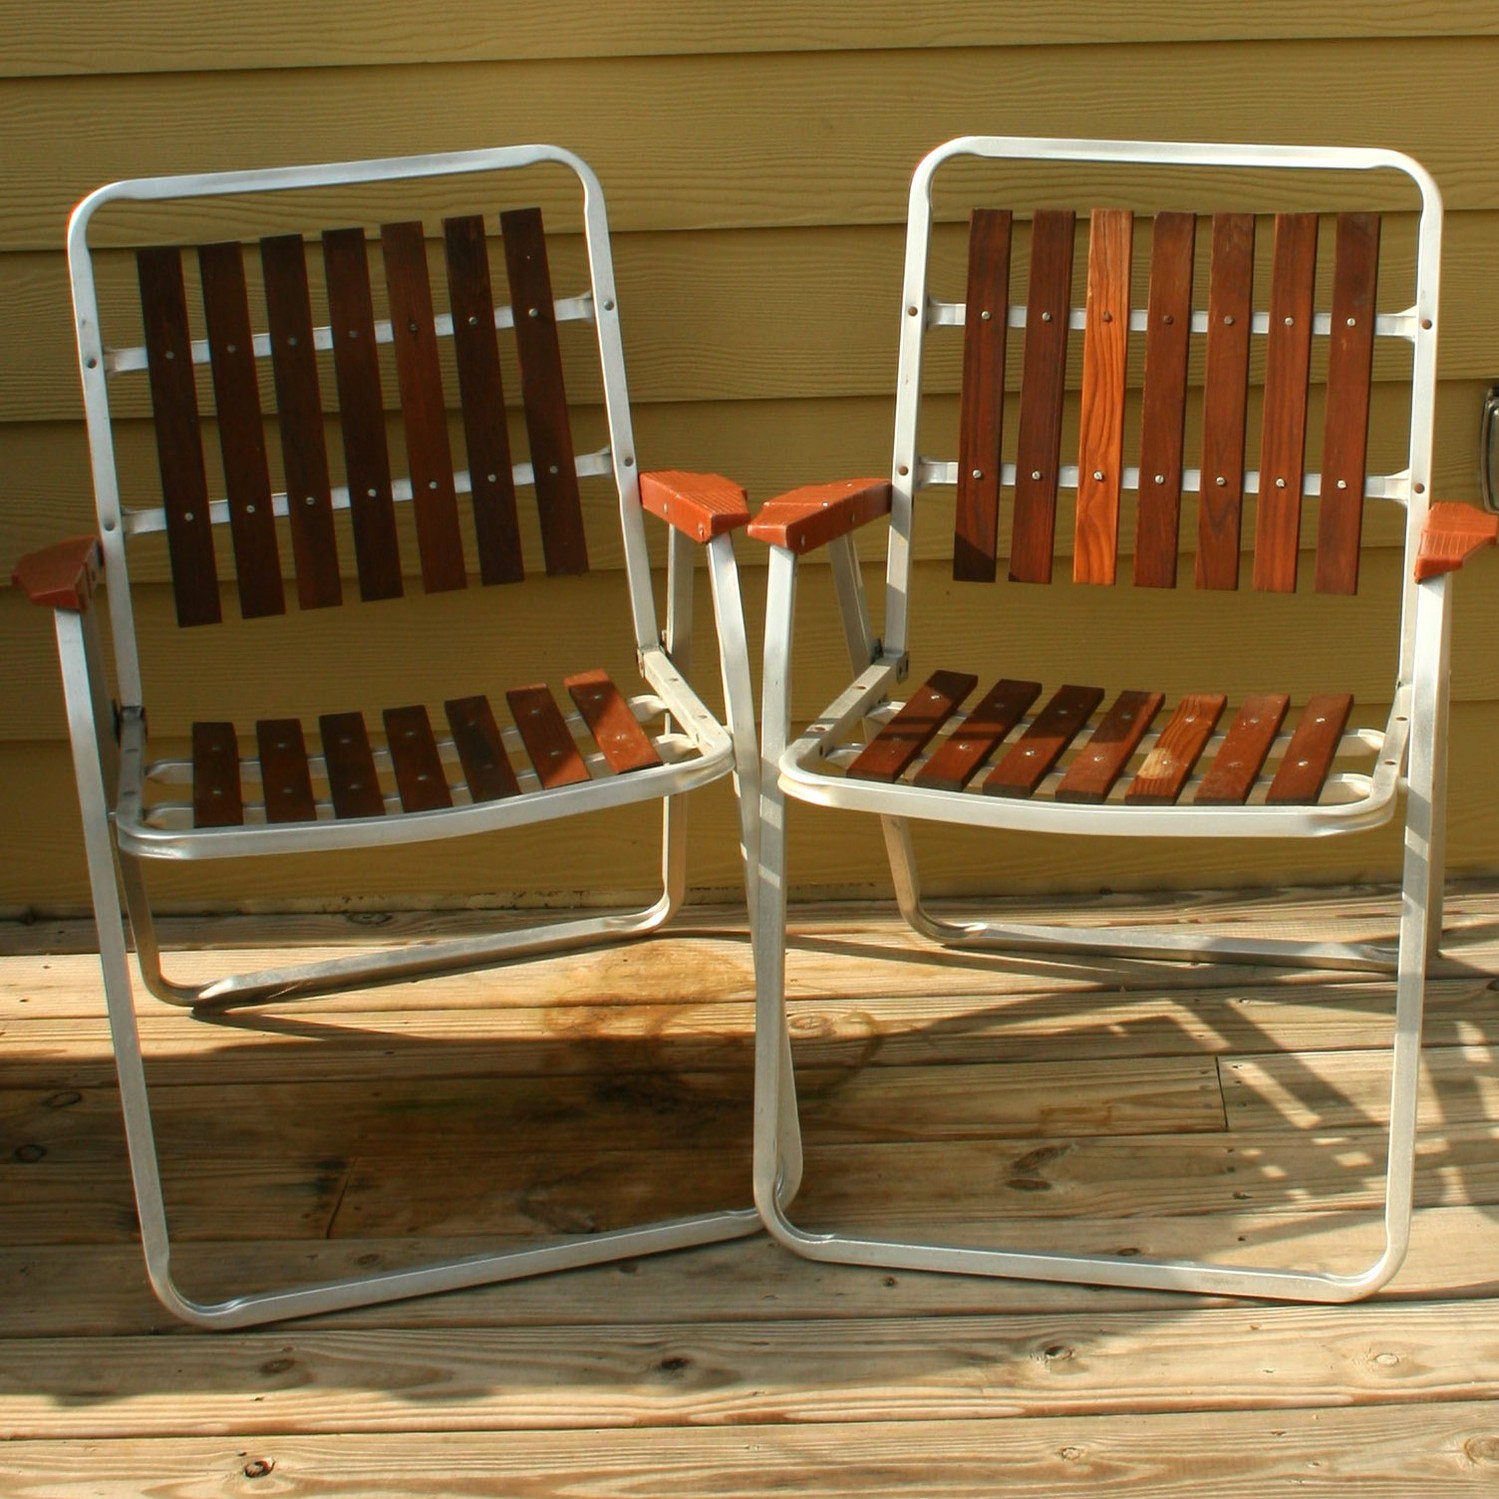 Best ideas about Retro Patio Furniture . Save or Pin Vintage Folding Lawn Chairs Mid Century Modern by Now.